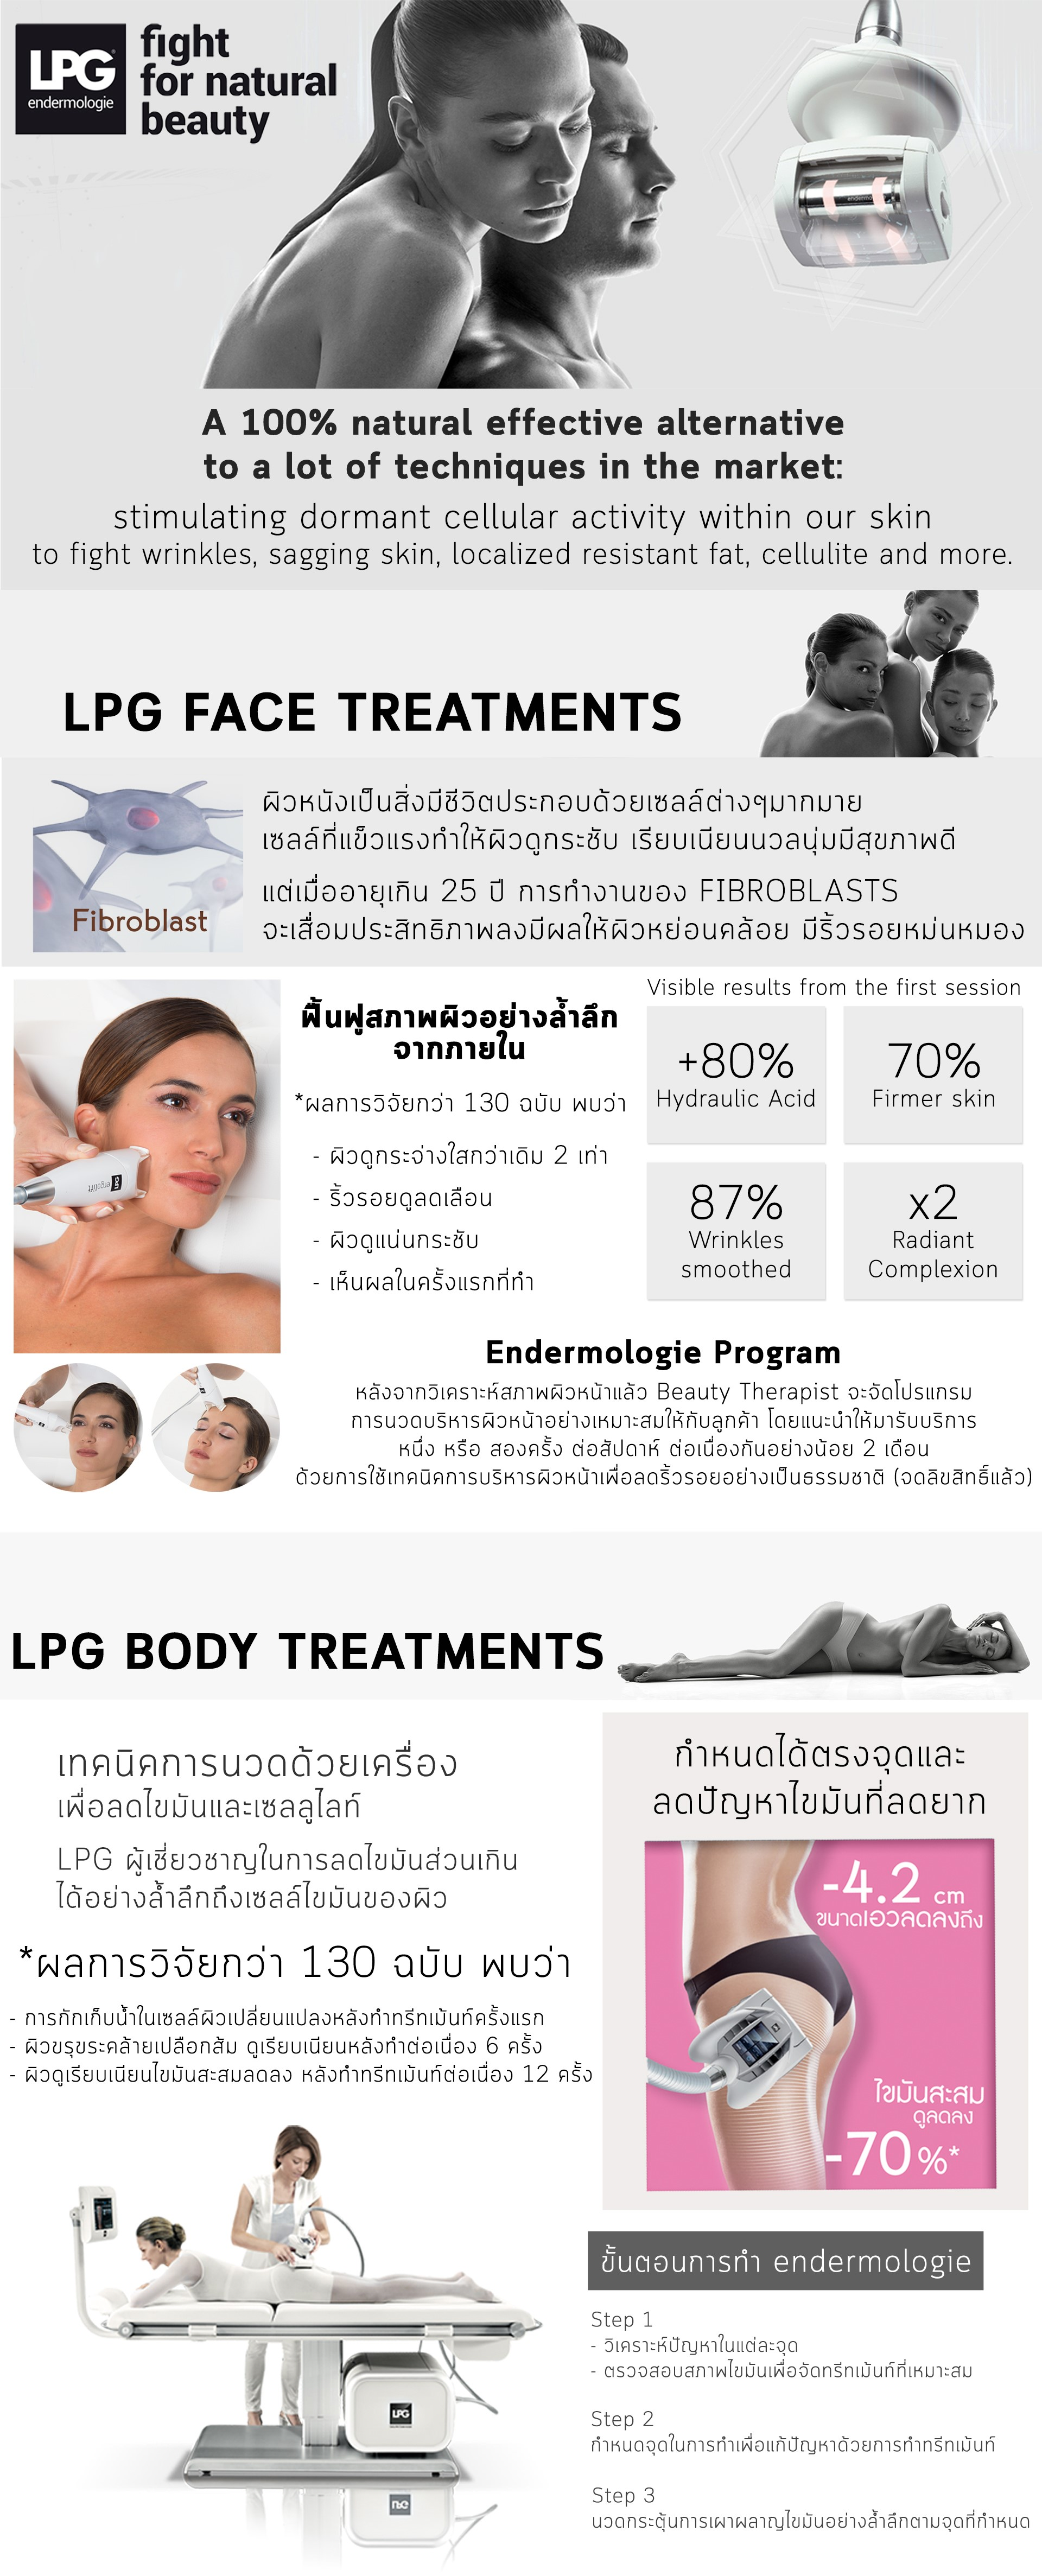 LPG Endermologie Treatments is a 100% natural effective alternative to a lot of techniques in the market